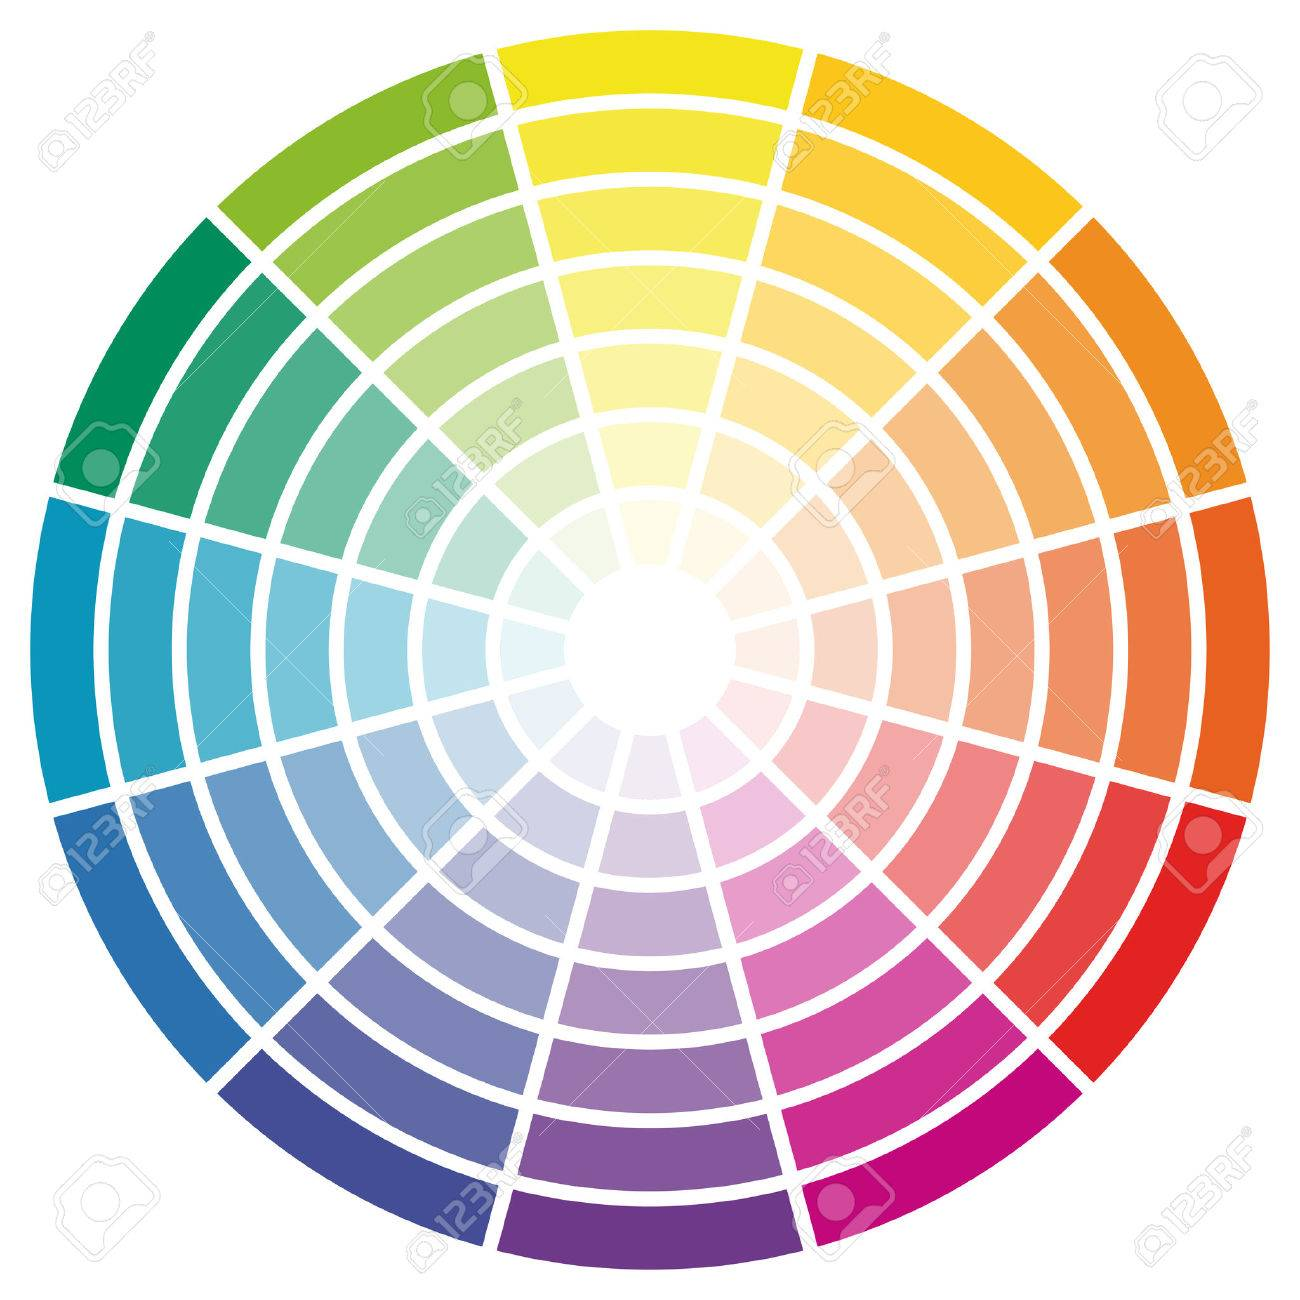 Illustration Of Printing Color Wheel With Different Colors In Gradations Stock Vector